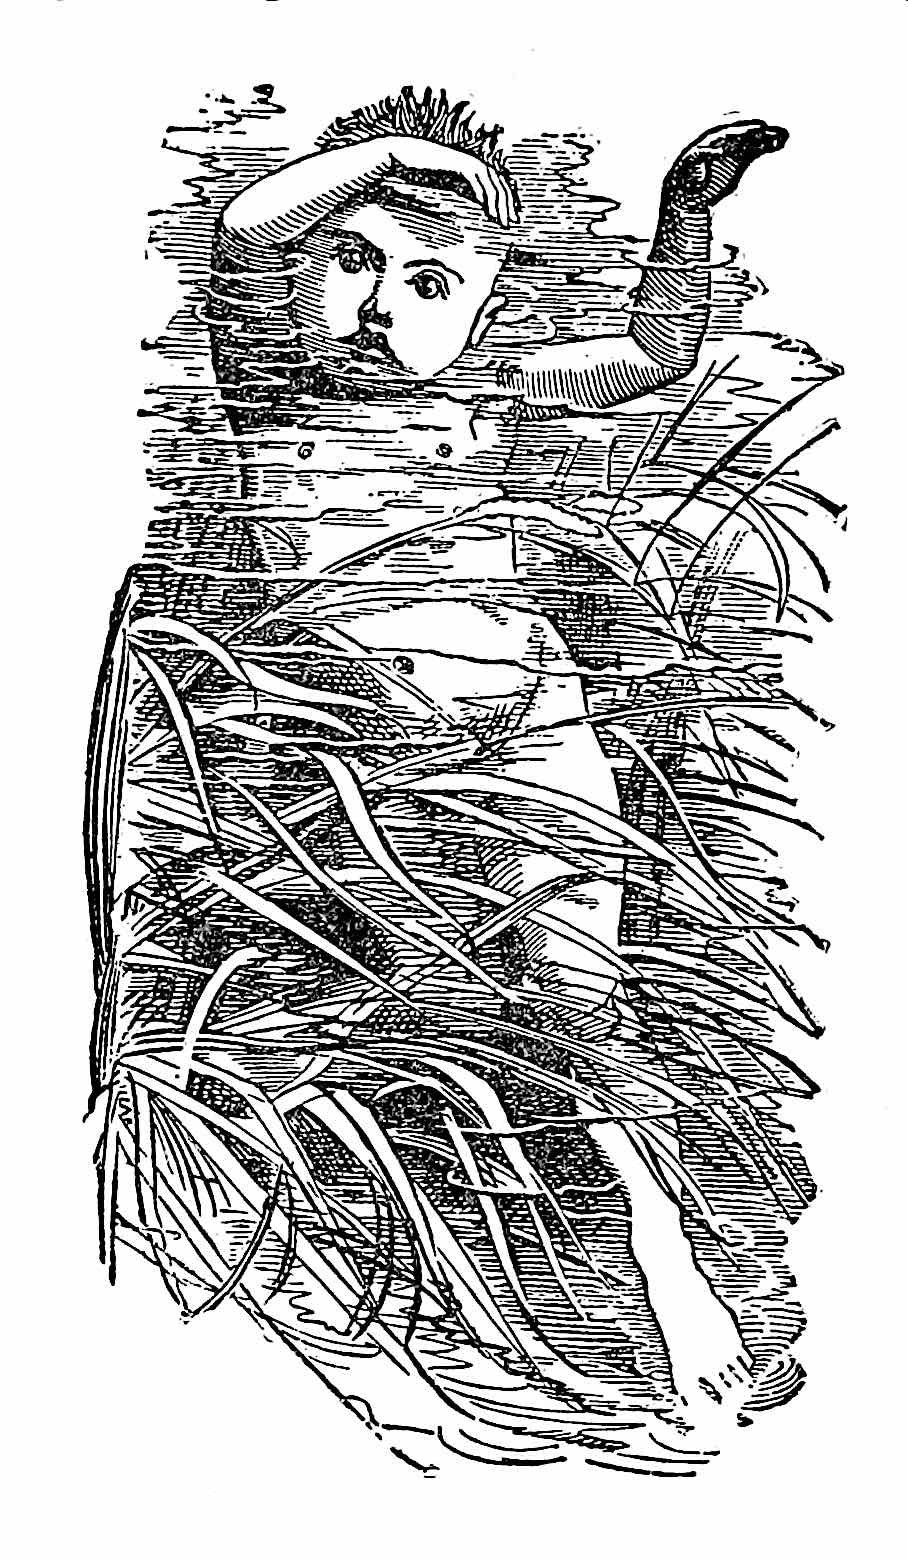 a Linley Sambourne 1880s children's book illustration of a baby underwater in a marsh wetland pond